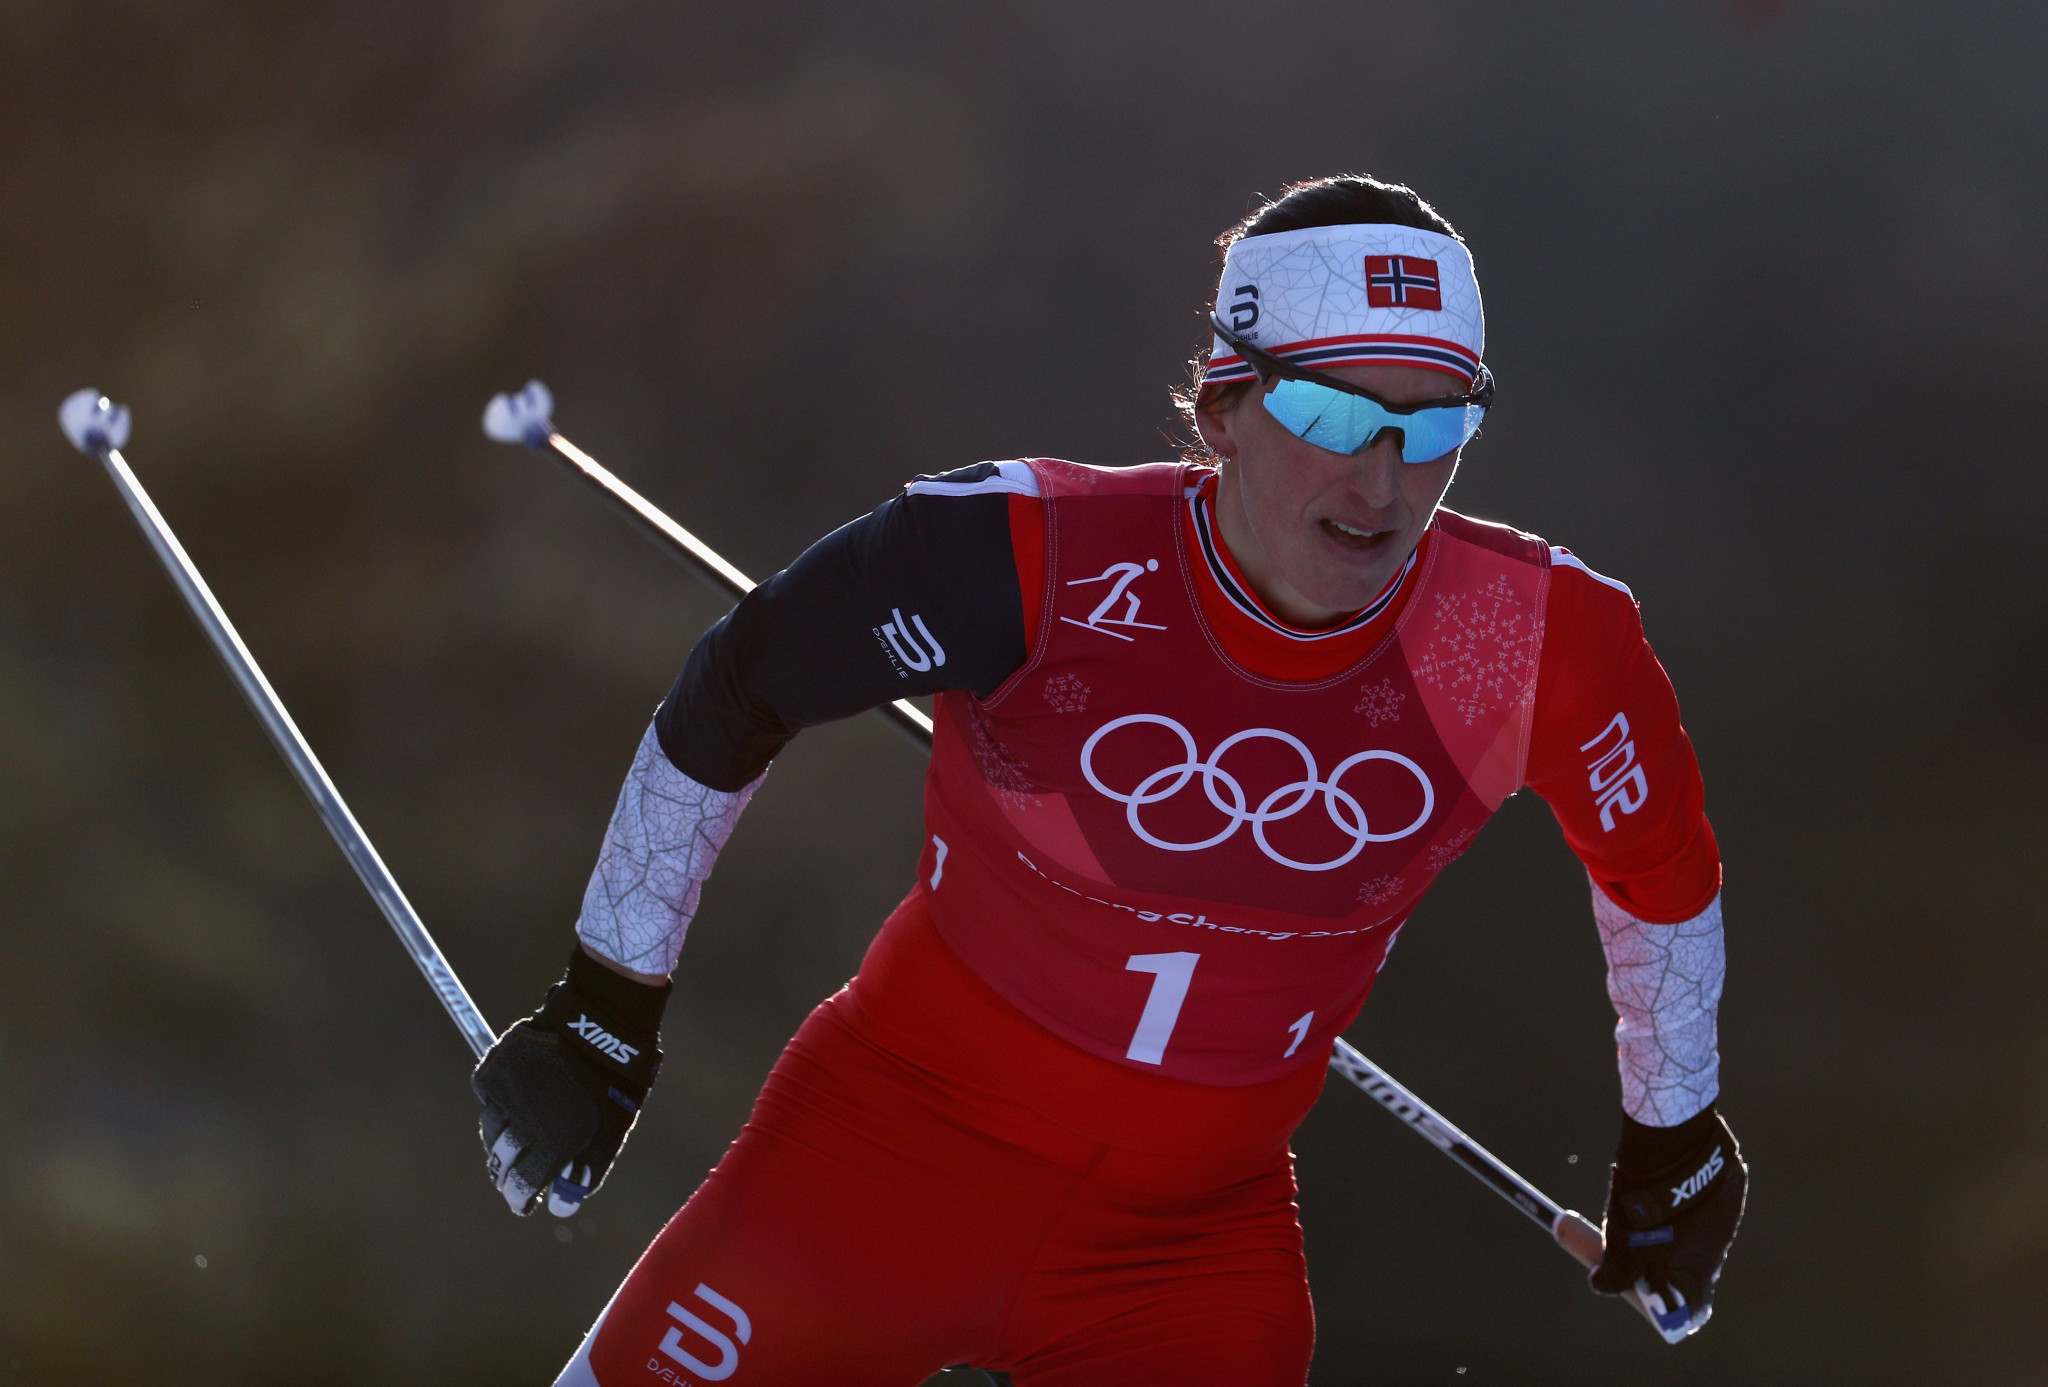 Norway's Marit Bjørgen has become the most decorated Winter Olympian of all time with her 14th medal ©Getty Images